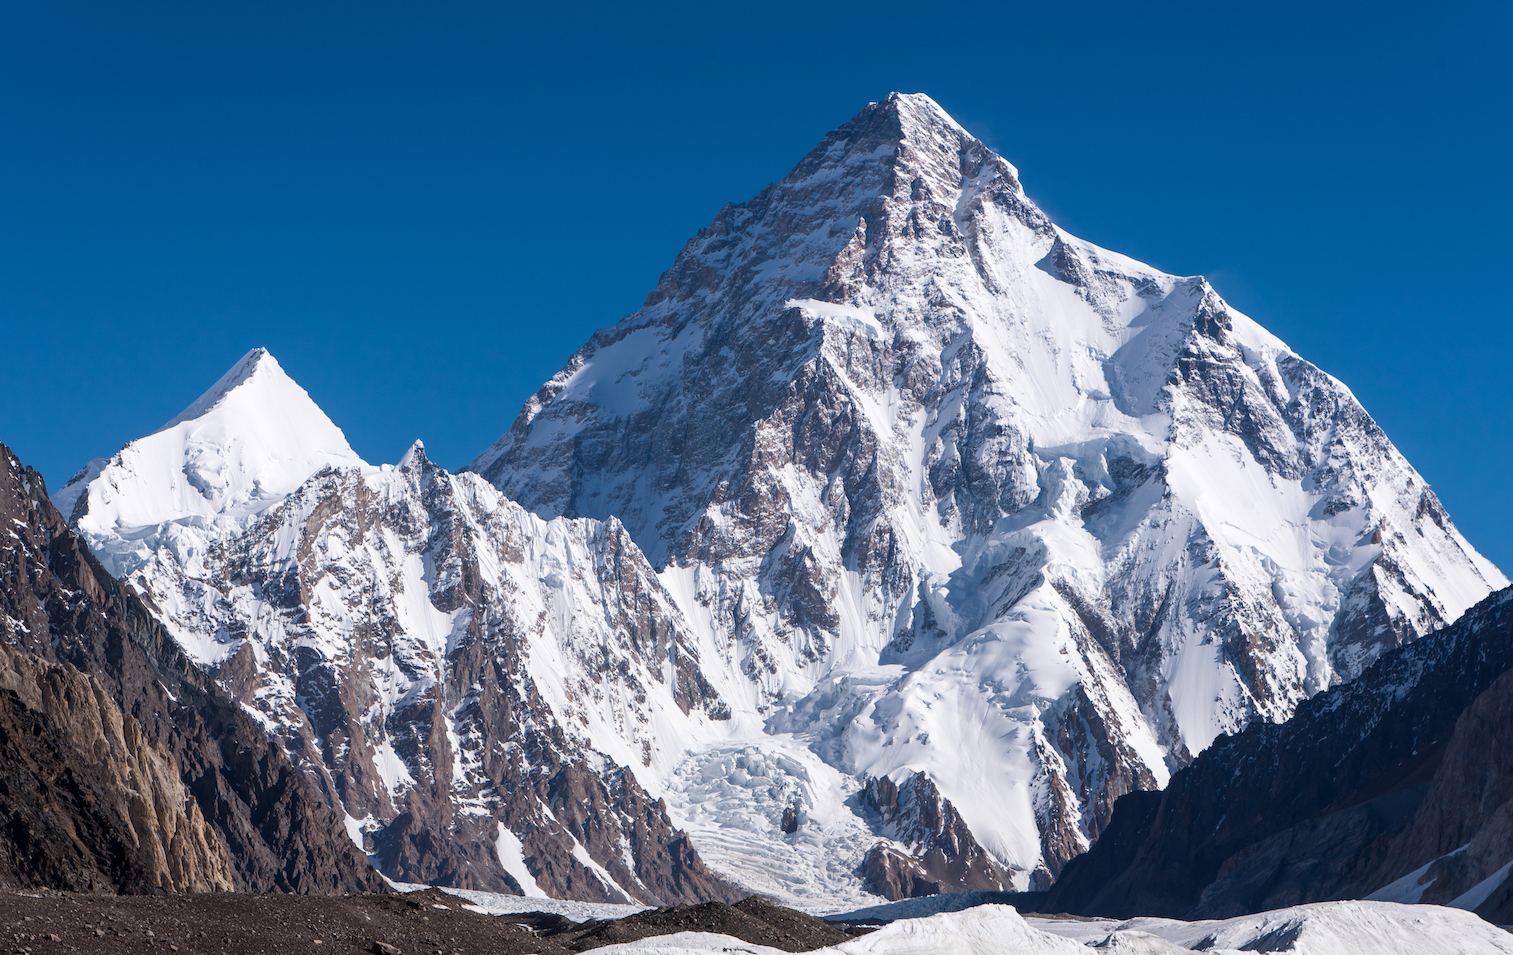 On July 22, 2018, K2, the world's second highest mountain, was descended for the first time ever on skis by Polish climber Andrzej Bargiel.